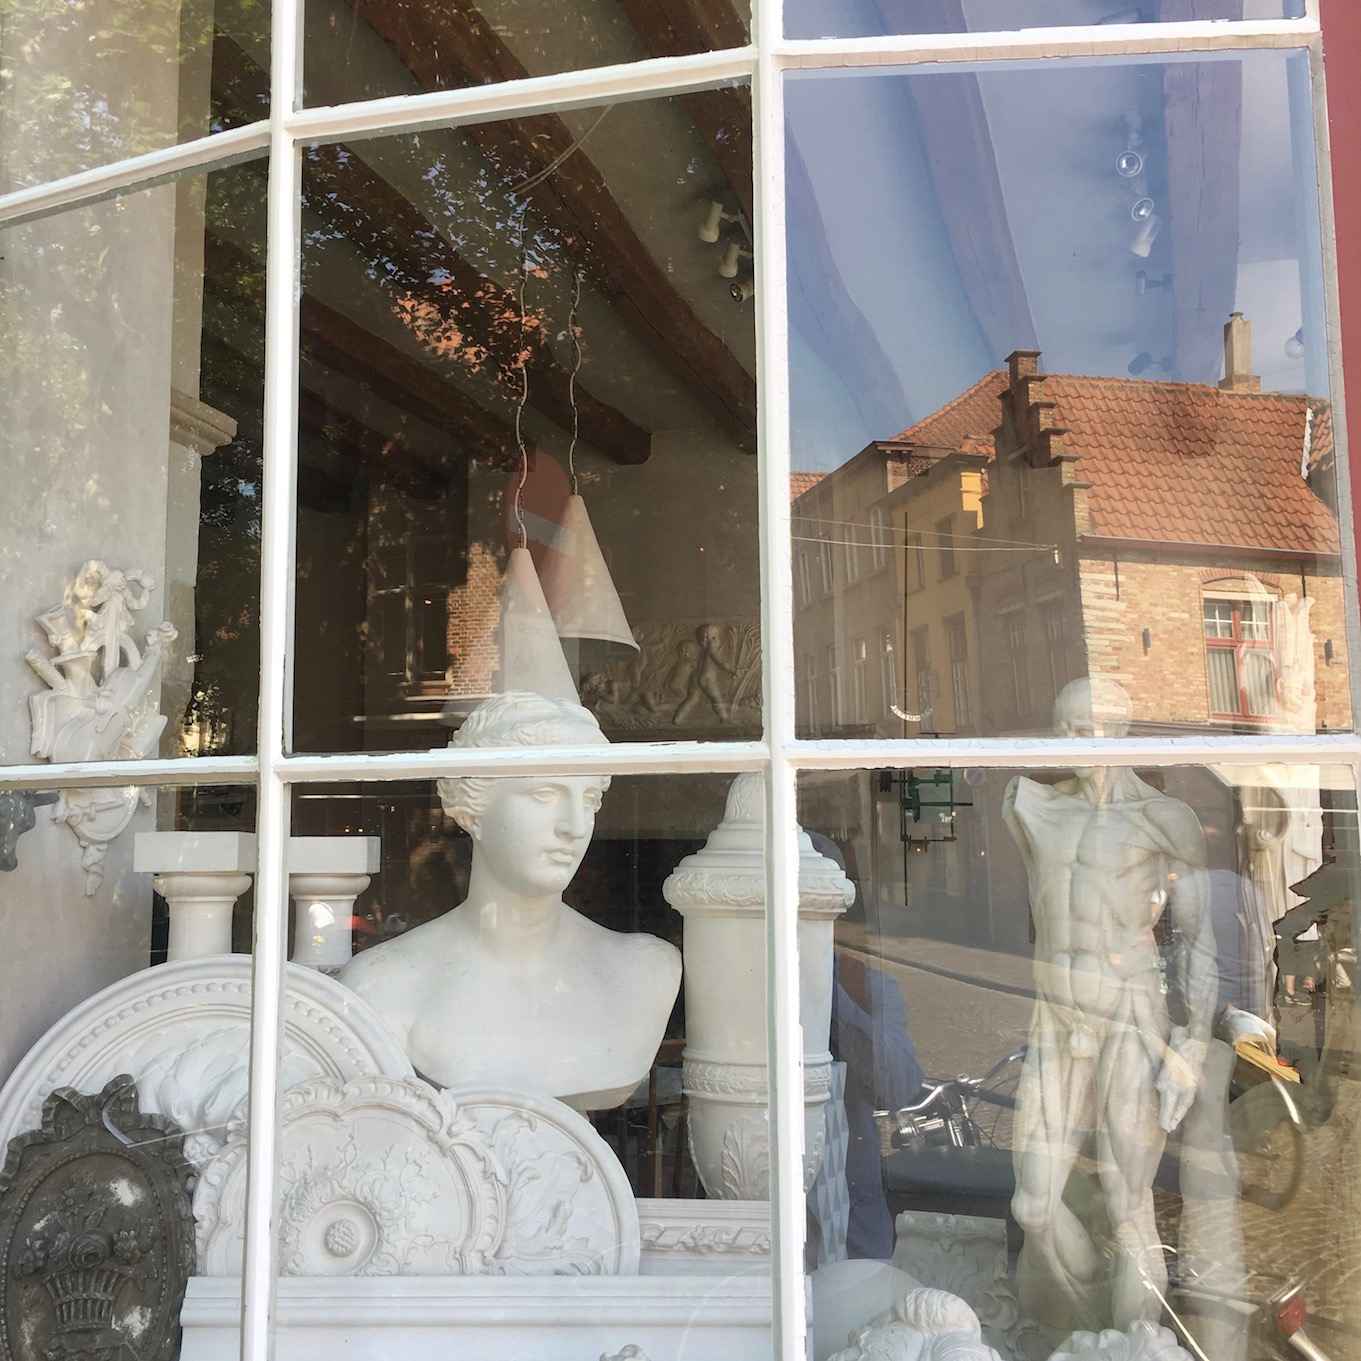 I missed an opportunity to go back and visit the inside of this artist's shop in Bruges, Belgium. What a pity.